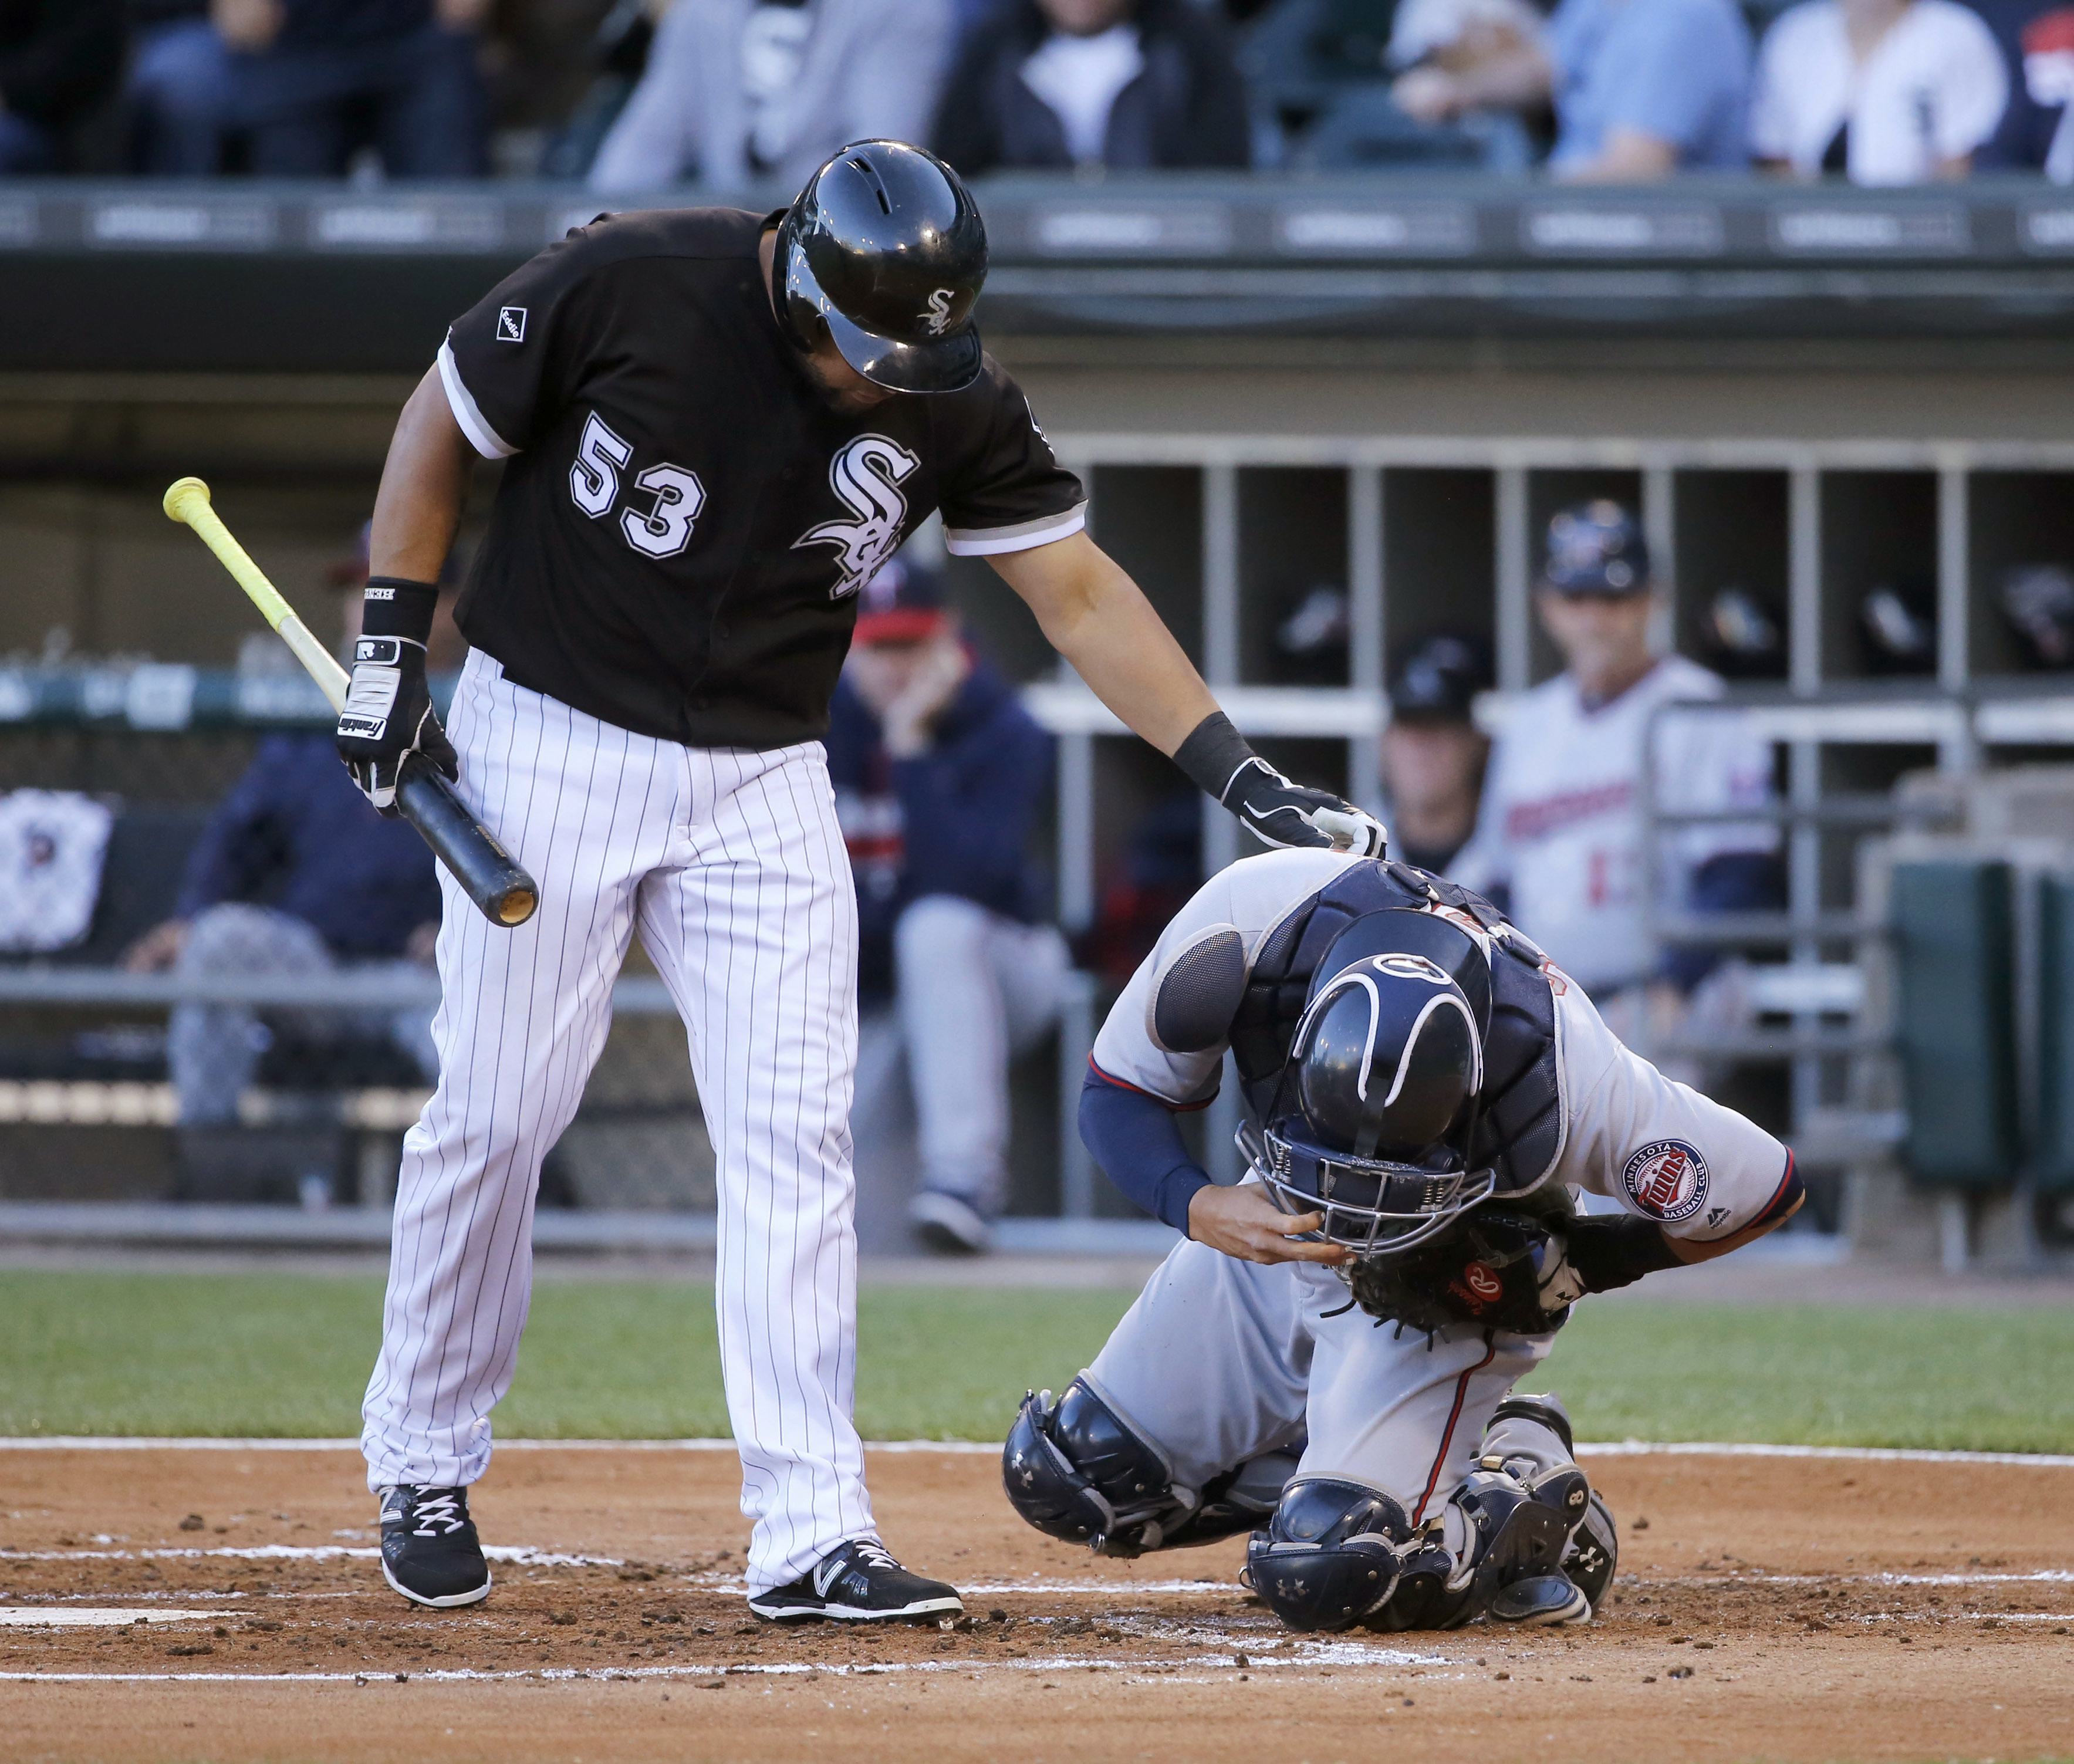 Chicago White Sox's Melky Cabrera checks on Minnesota Twins catcher Kurt Suzuki after Suzuki was hit on the arm byCabrera's foul ball during the first inning of a baseball game Tuesday, June 28, 2016, in Chicago. (AP Photo/Charles Rex Arbogast)